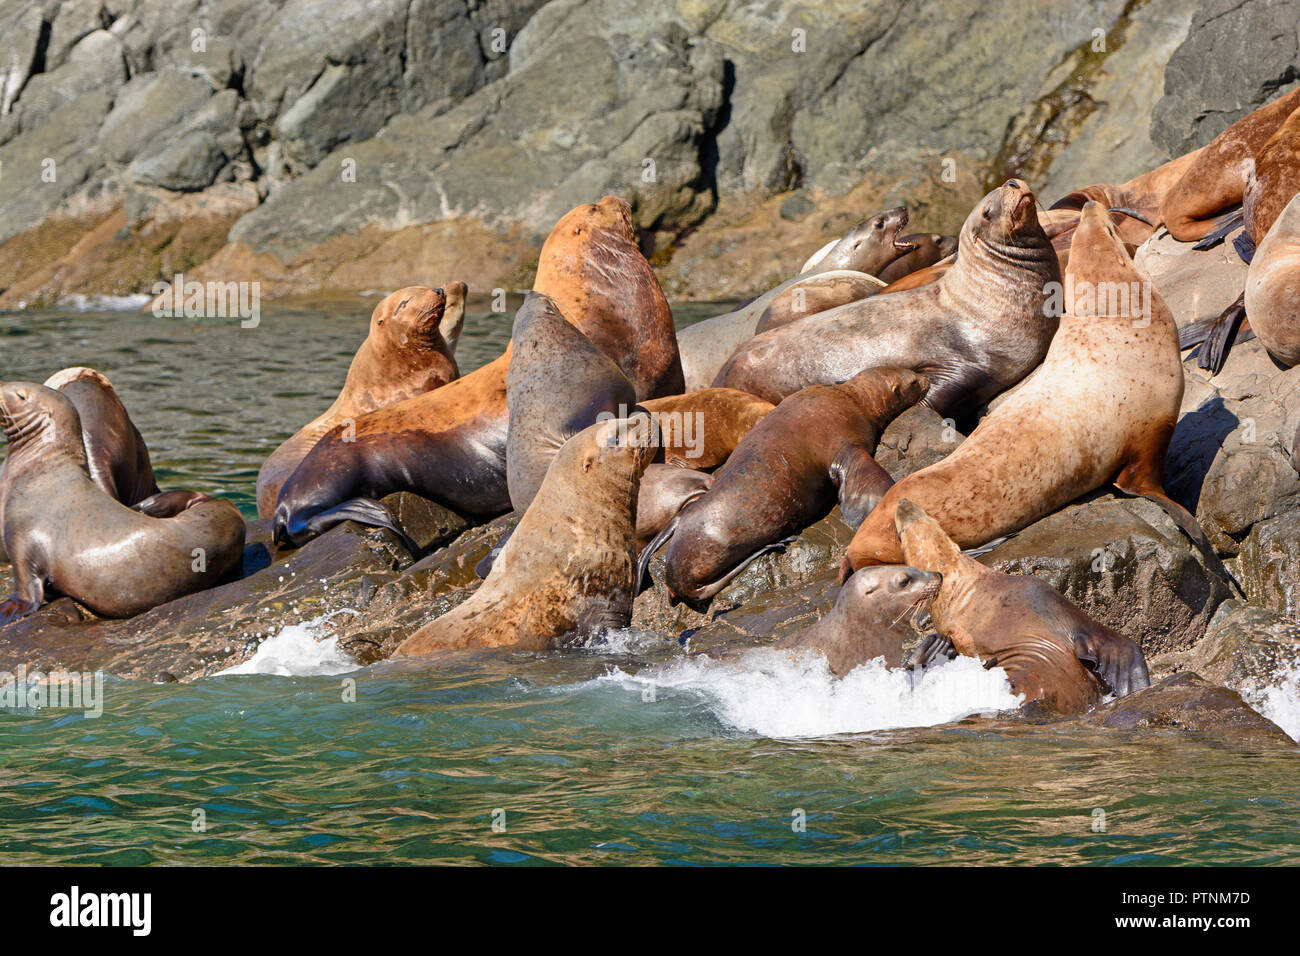 Stellar Sea Lions Crowding on a Rock in Prince William Sound near Valdez, Alaska - Stock Image